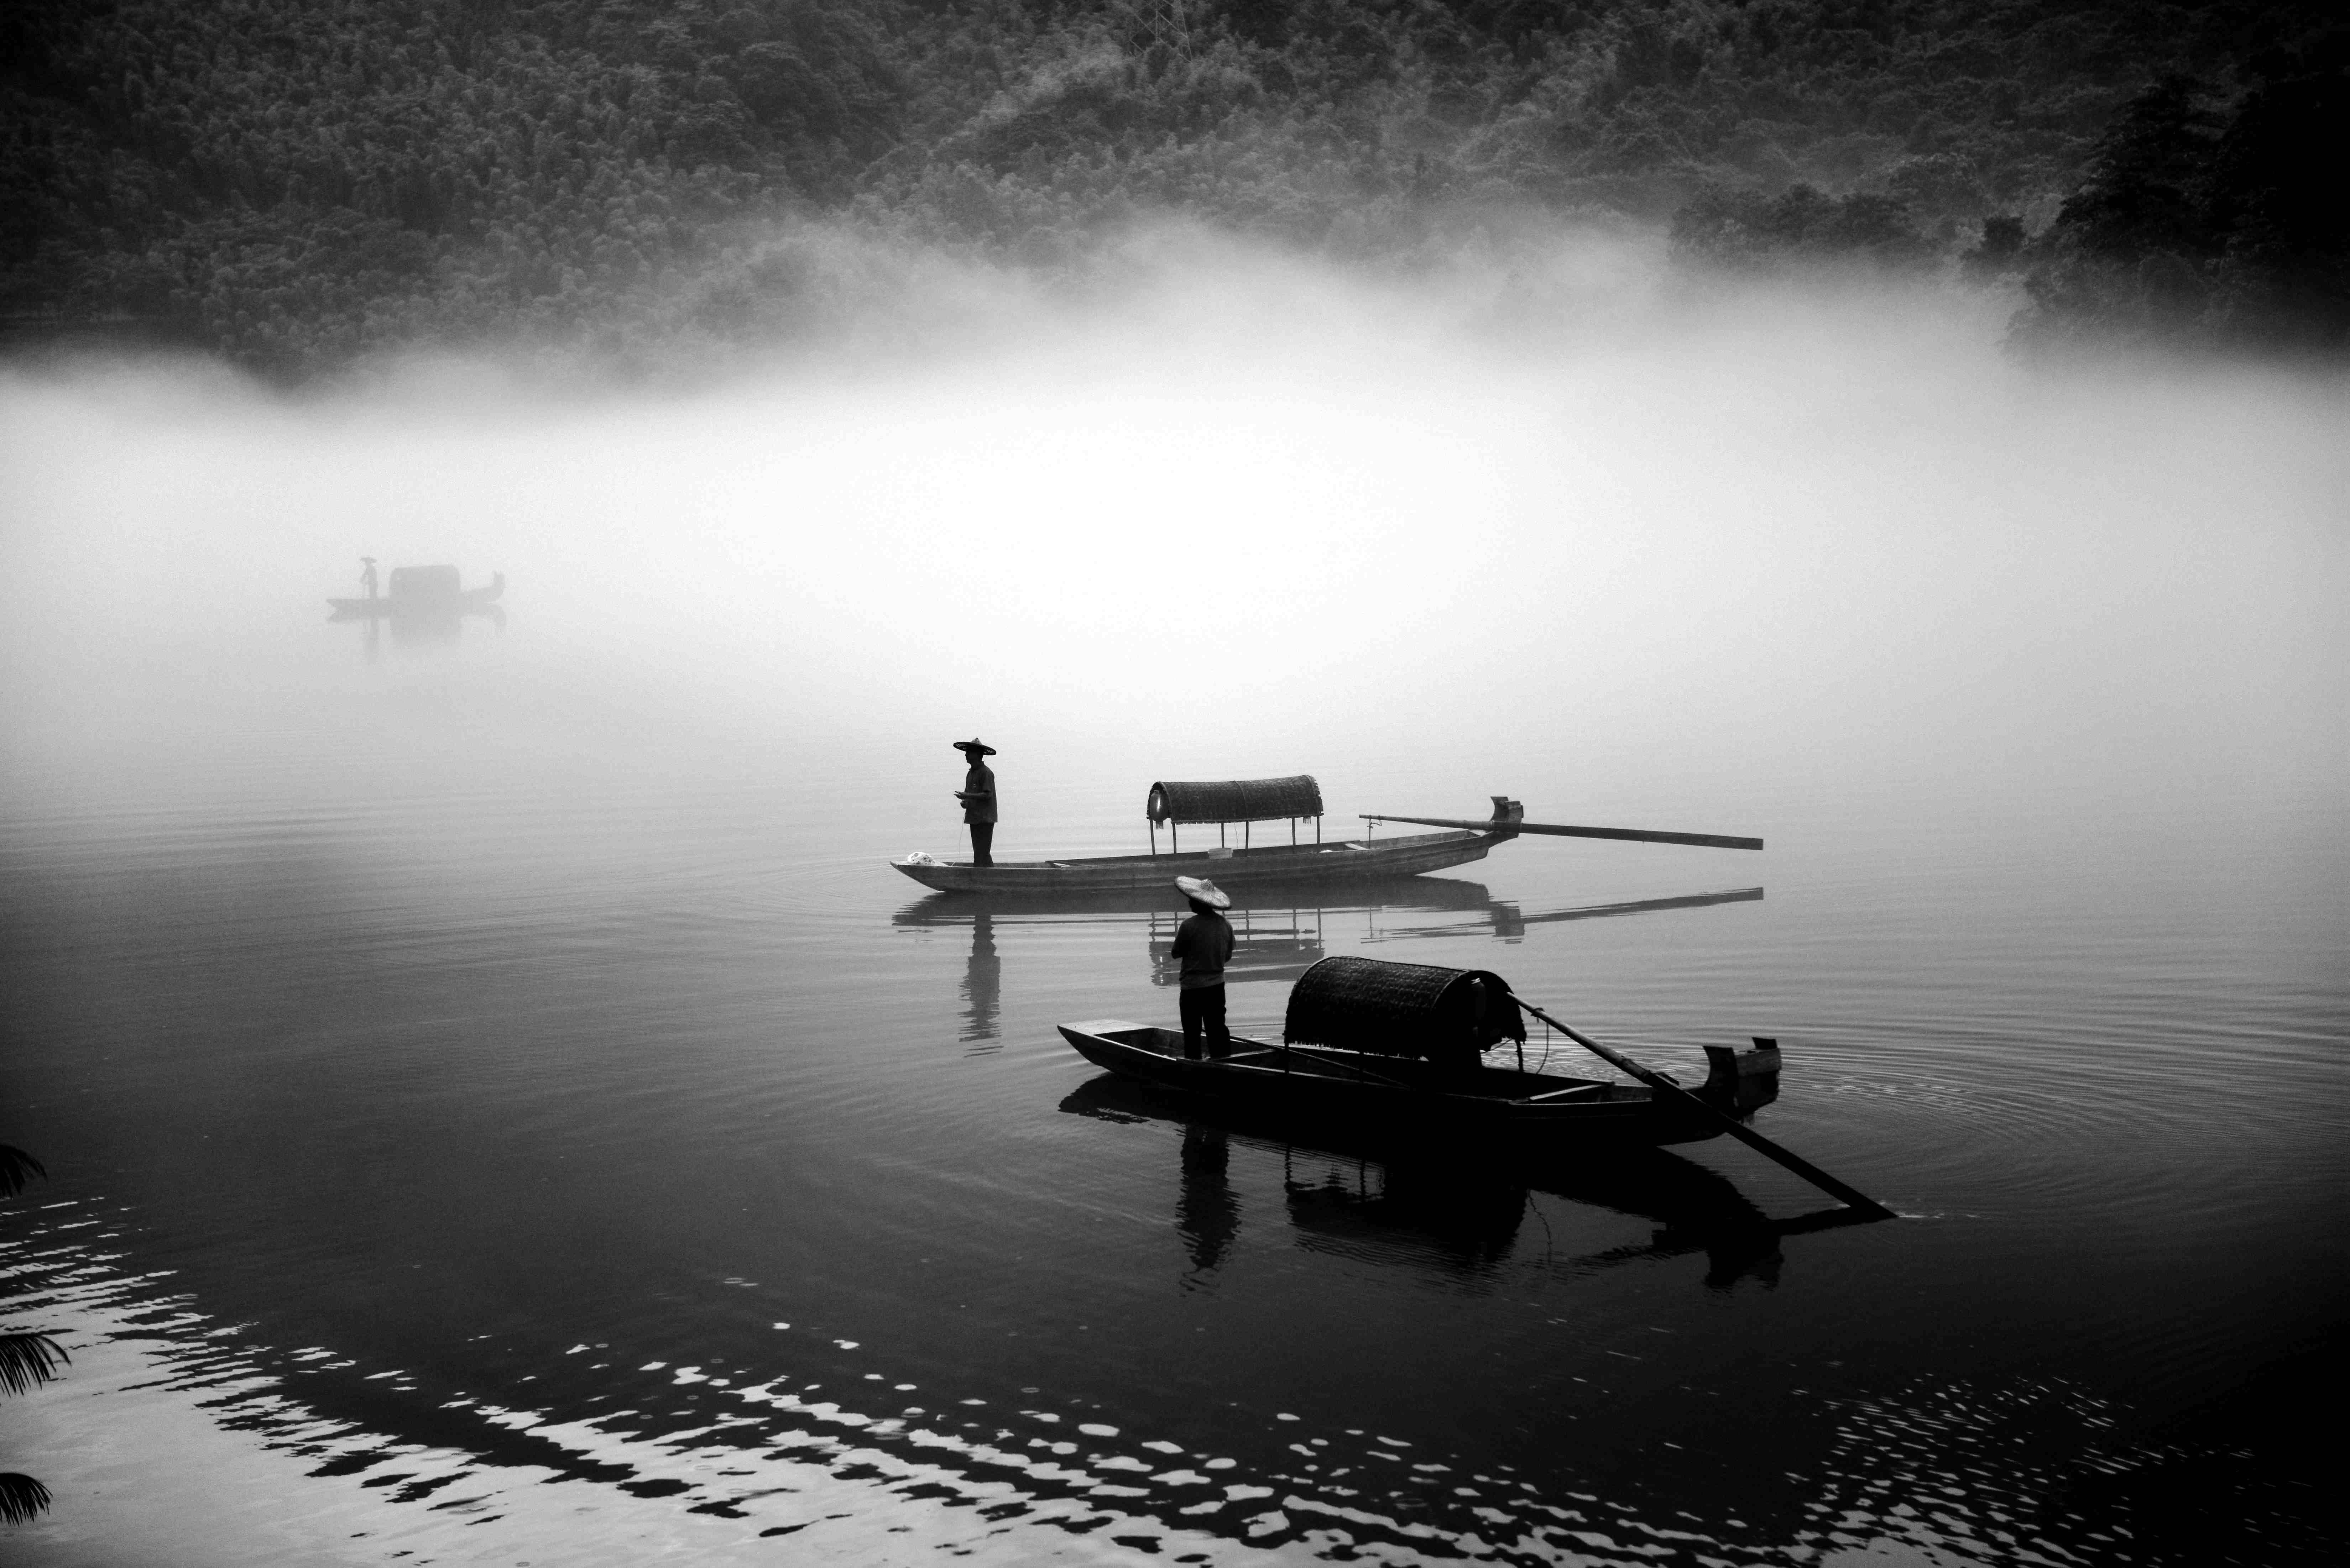 Silhouettes of fishermen on boats in misty waters